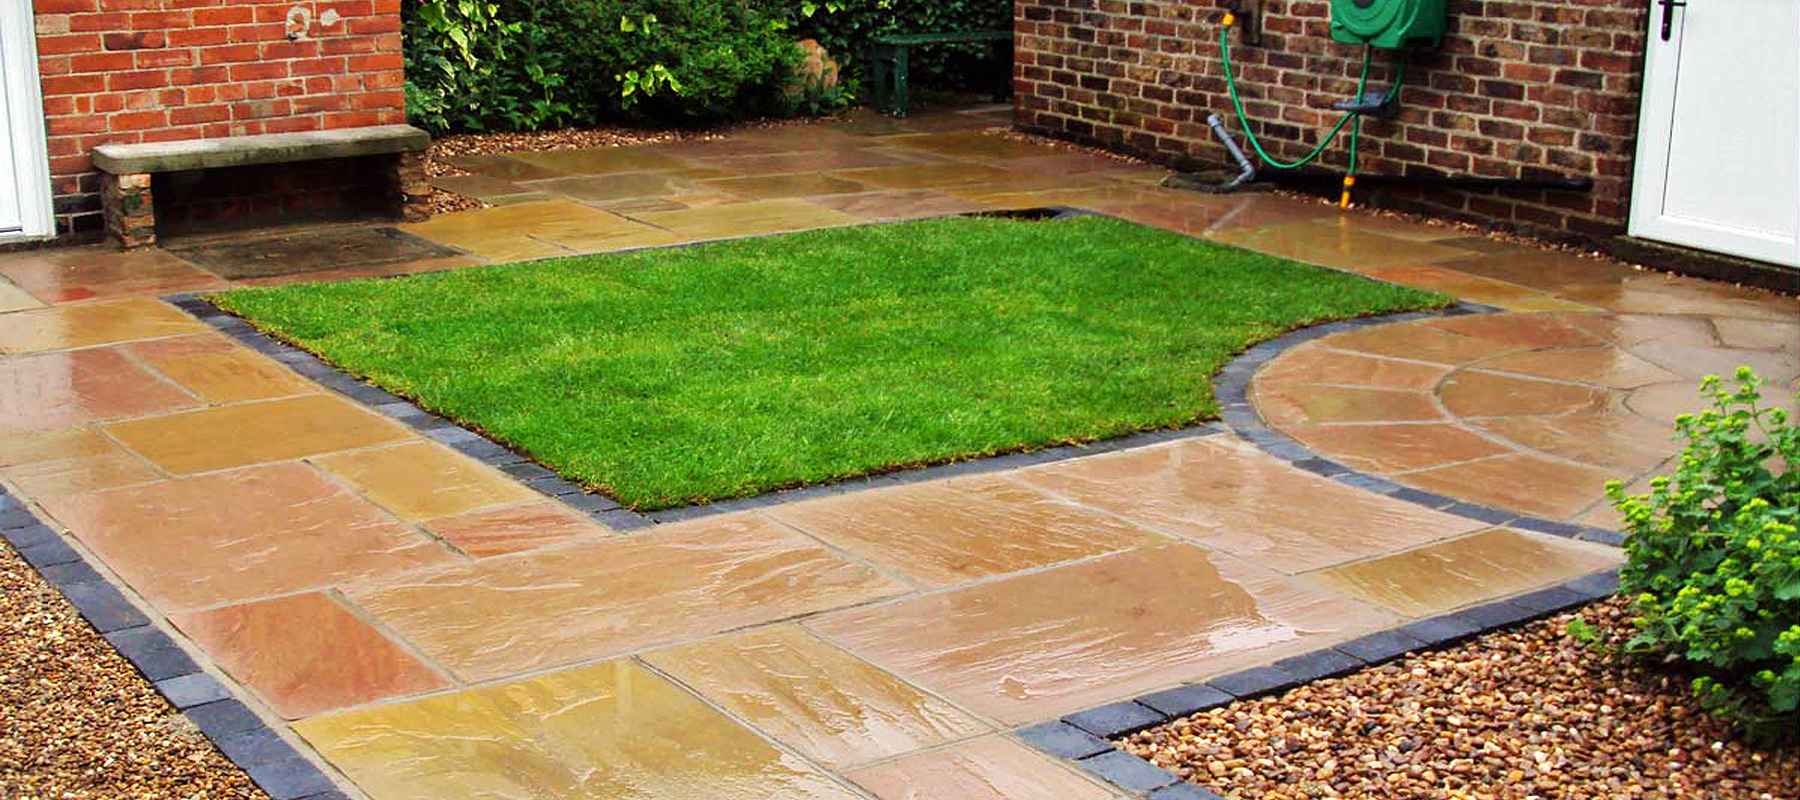 Right Paving Are Specialists In The Installation Of Block Concrete Setts Slabs And Natural Stone For Driveways Paths Patios